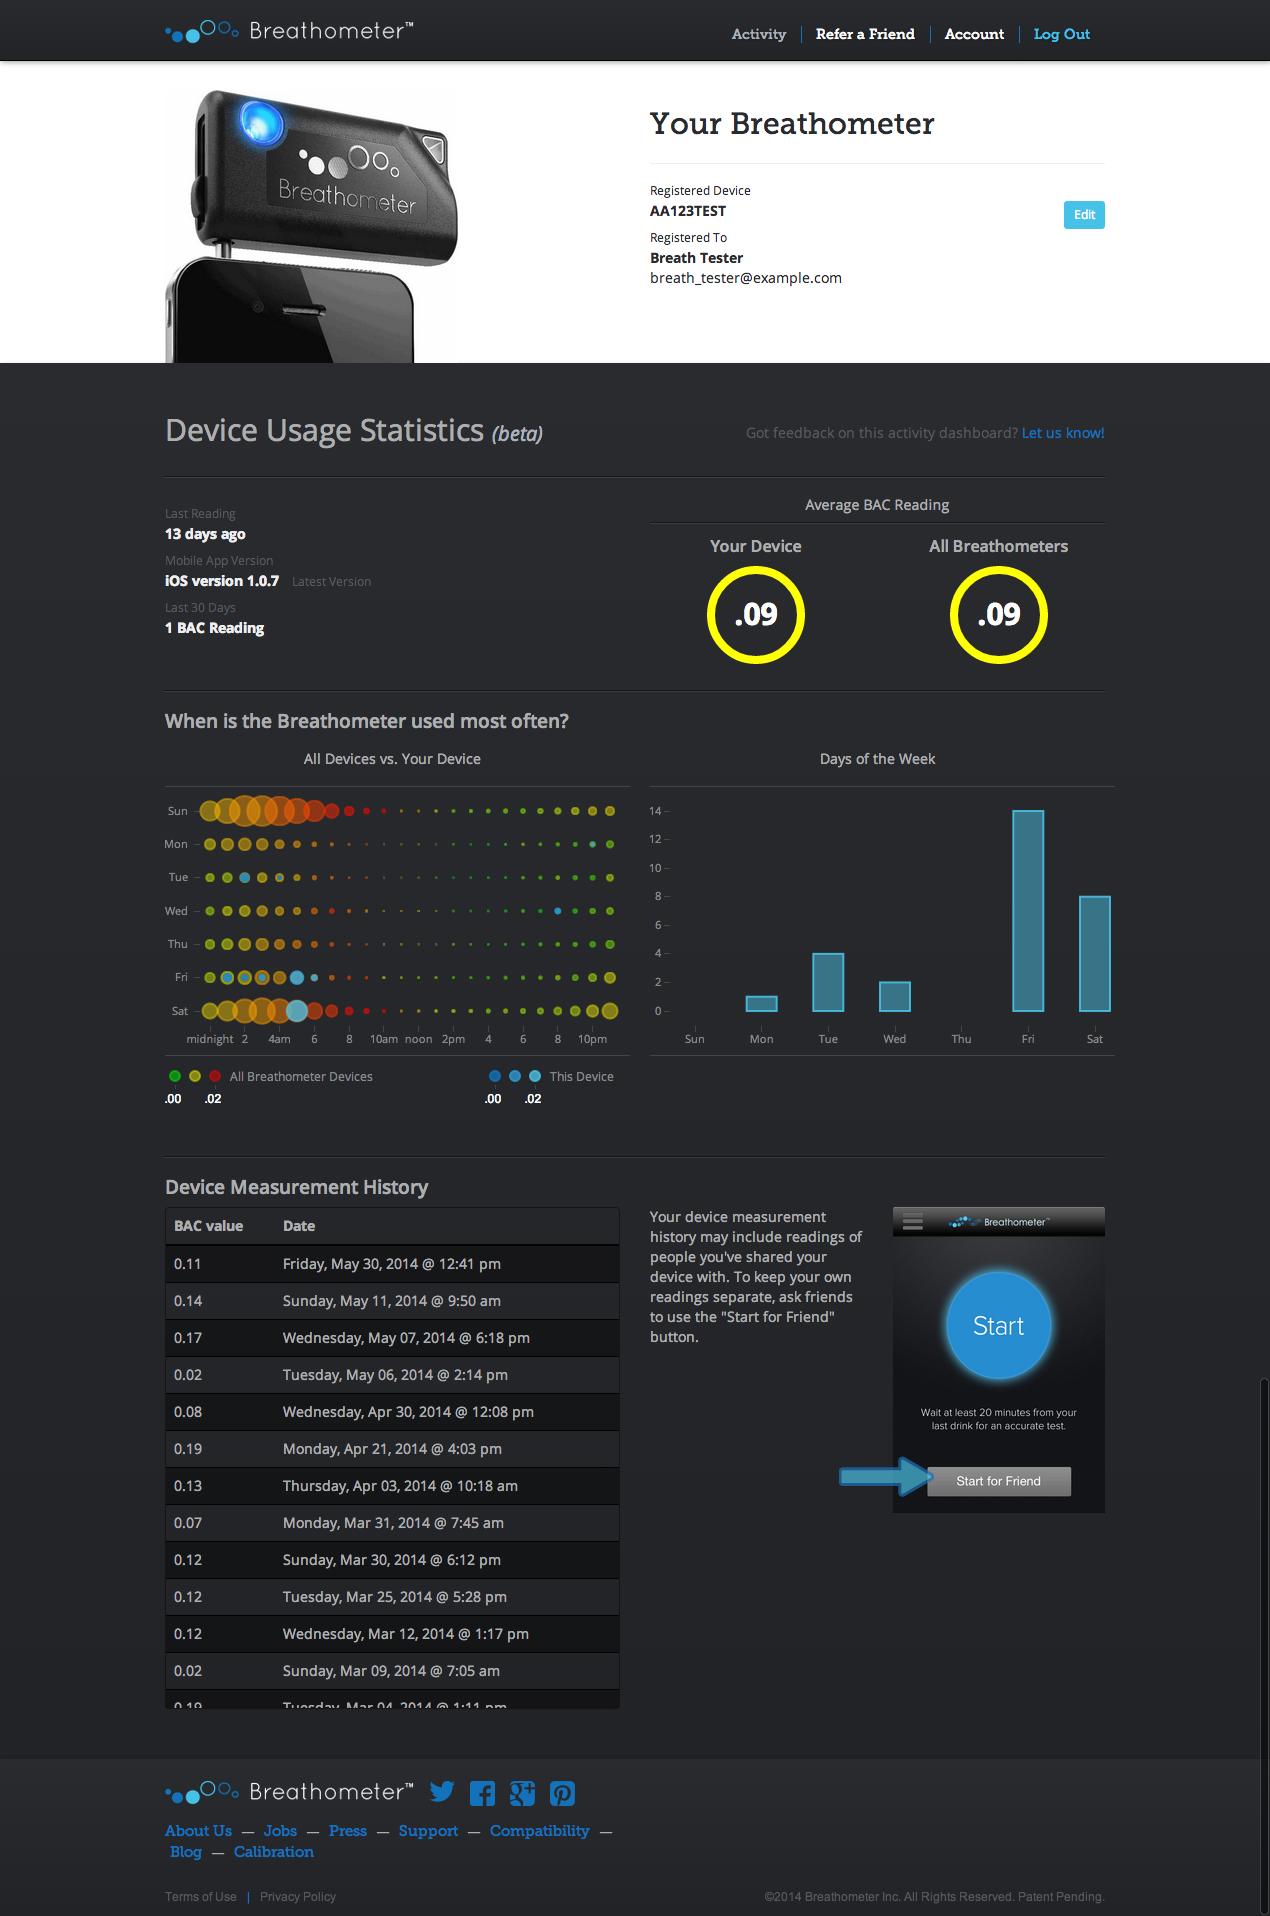 User Dashboard (Full Sized)